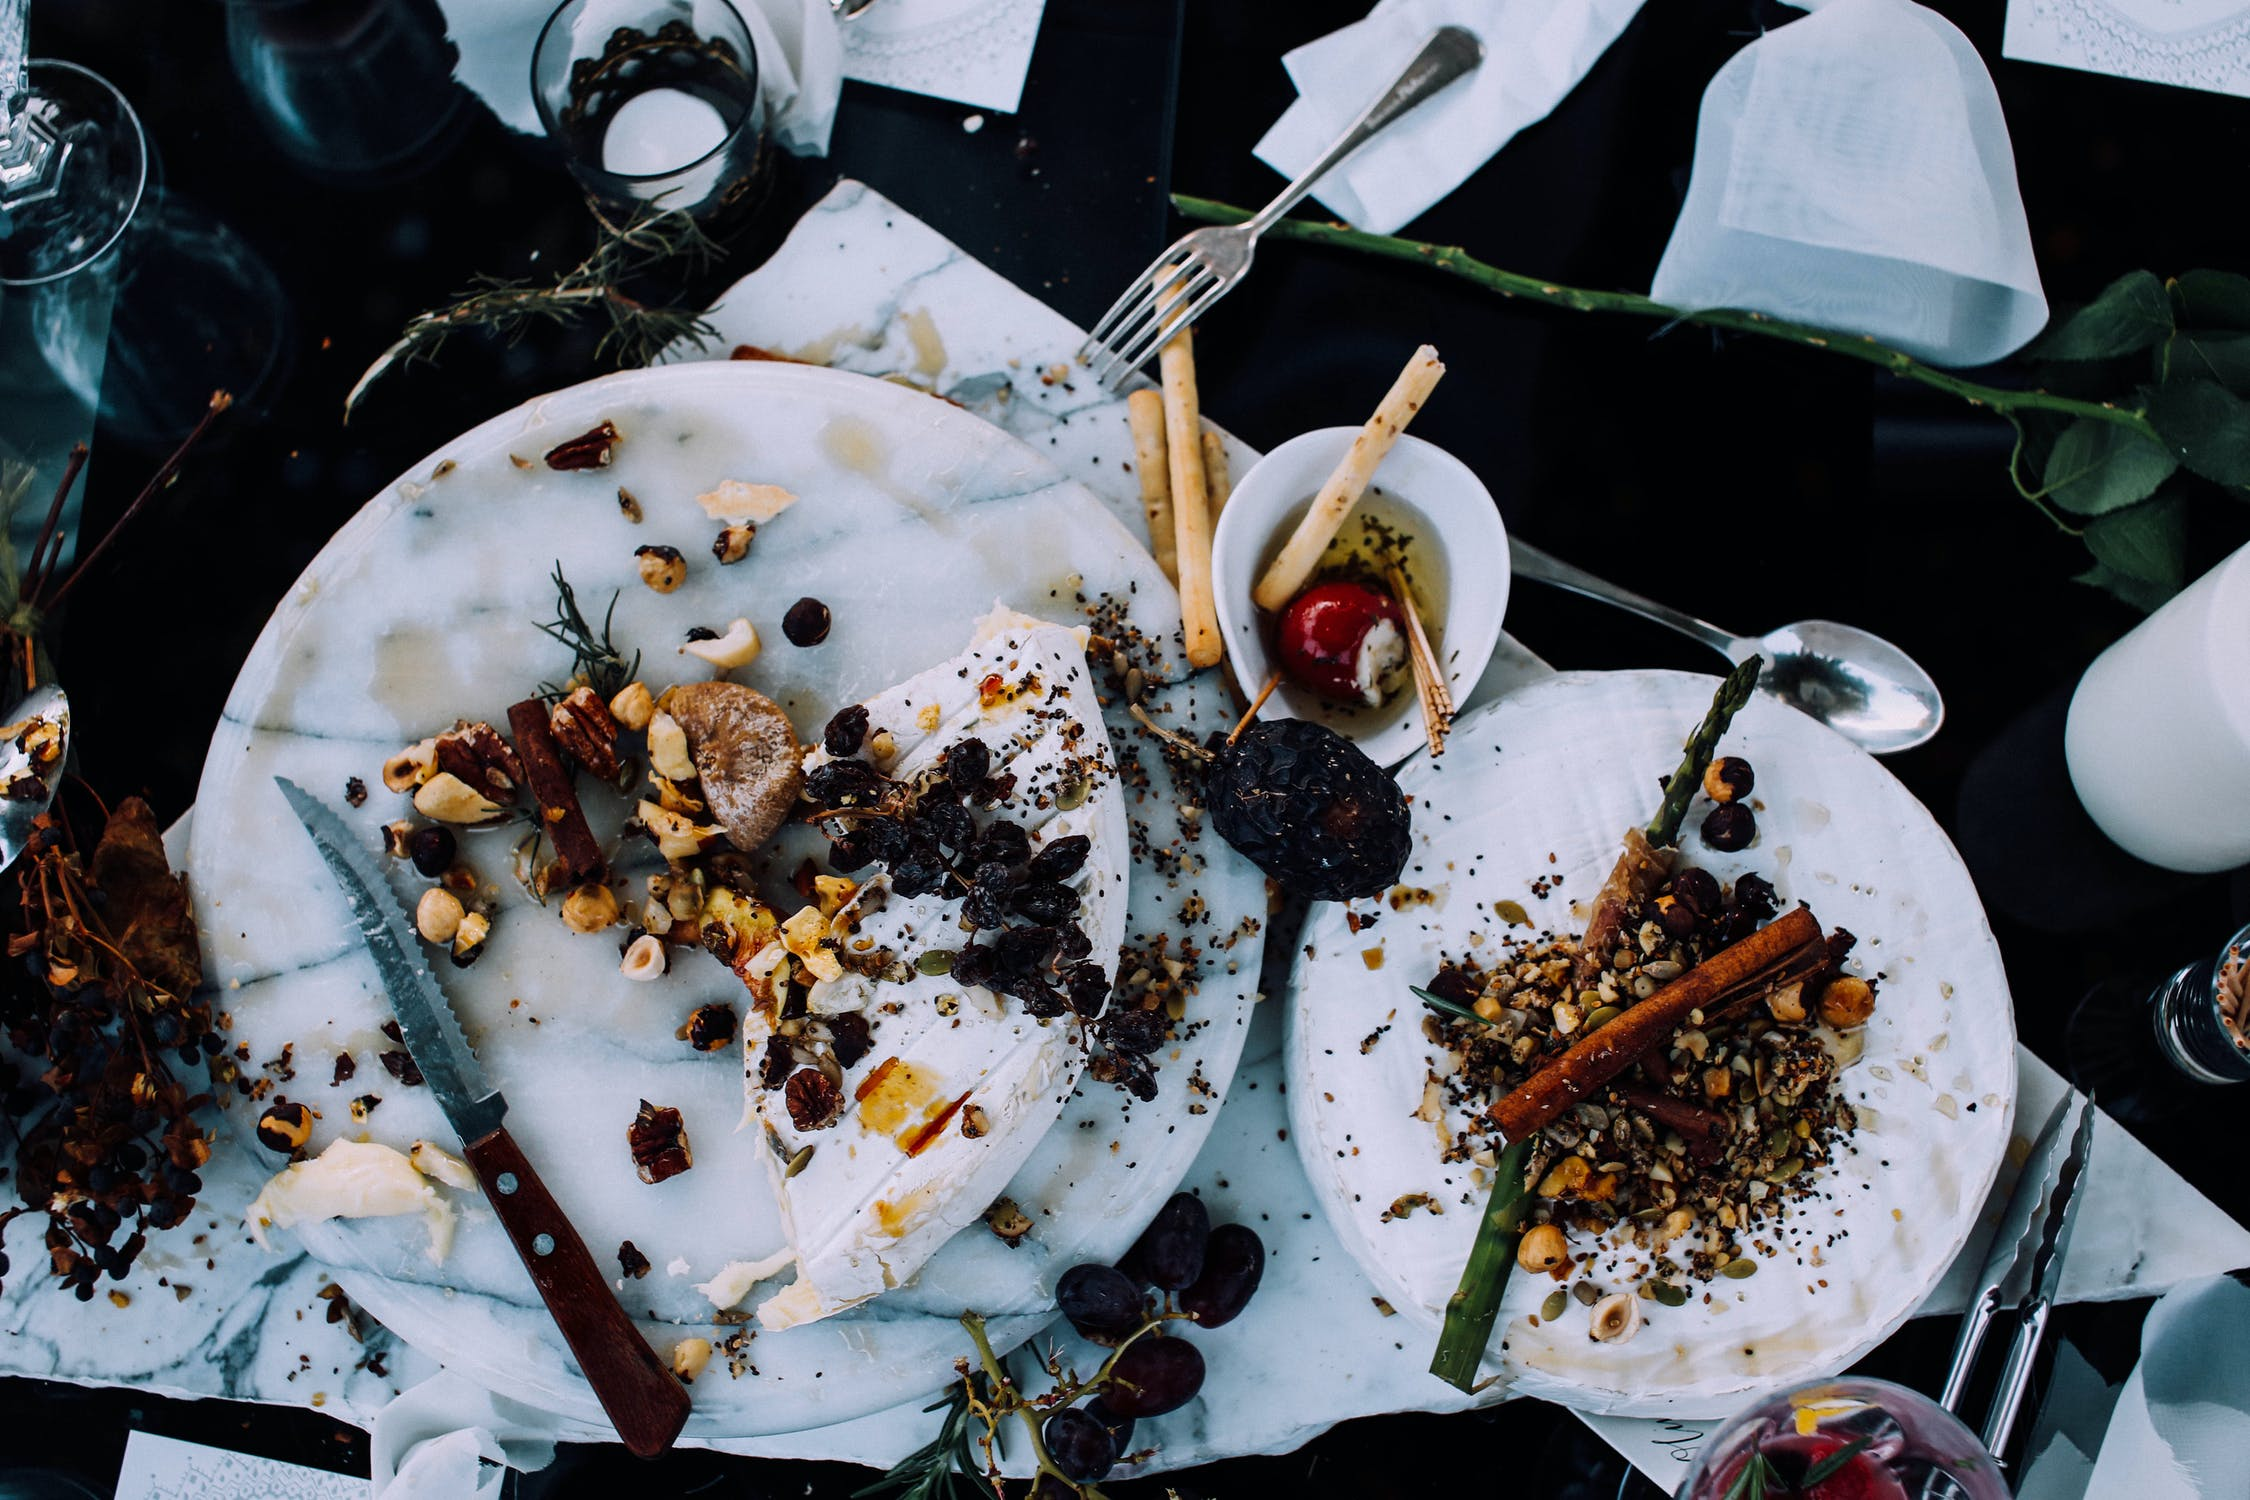 The cleaners took away the dirty dishes | Source: Pexels